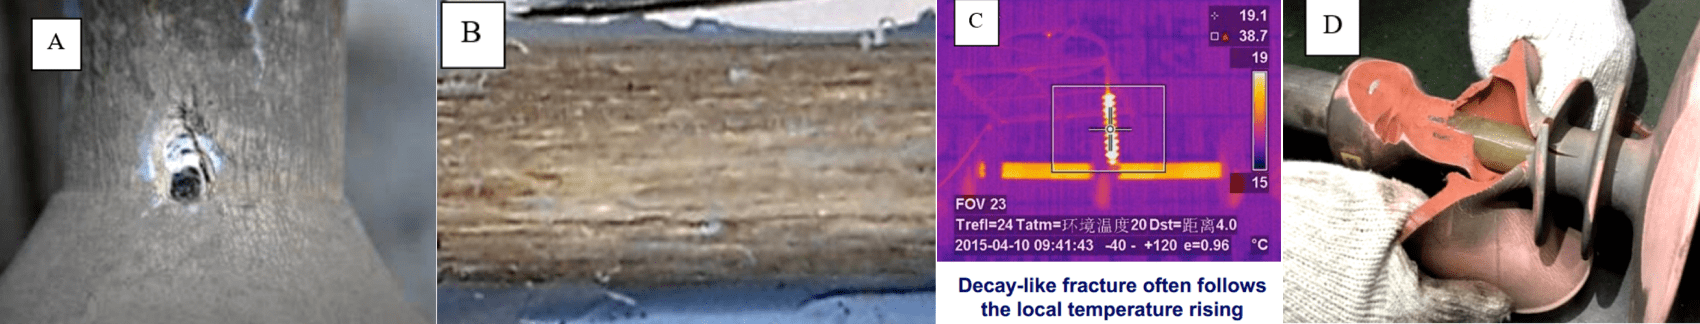 Fig. 3: Illustration of Chinese data on 'decay-like fractures'. A. Punctures in housing covering the internal 'decay-like fractures'; B. Appearance of fiberglass rod; C. Detection of internal failure by IR; D. Poor adhesion believed to be root cause of damage. CLICK TO ENLARGE composite insulator Testing Adhesion Between Fiberglass Rod & Housing in Composite Insulators inmr 1